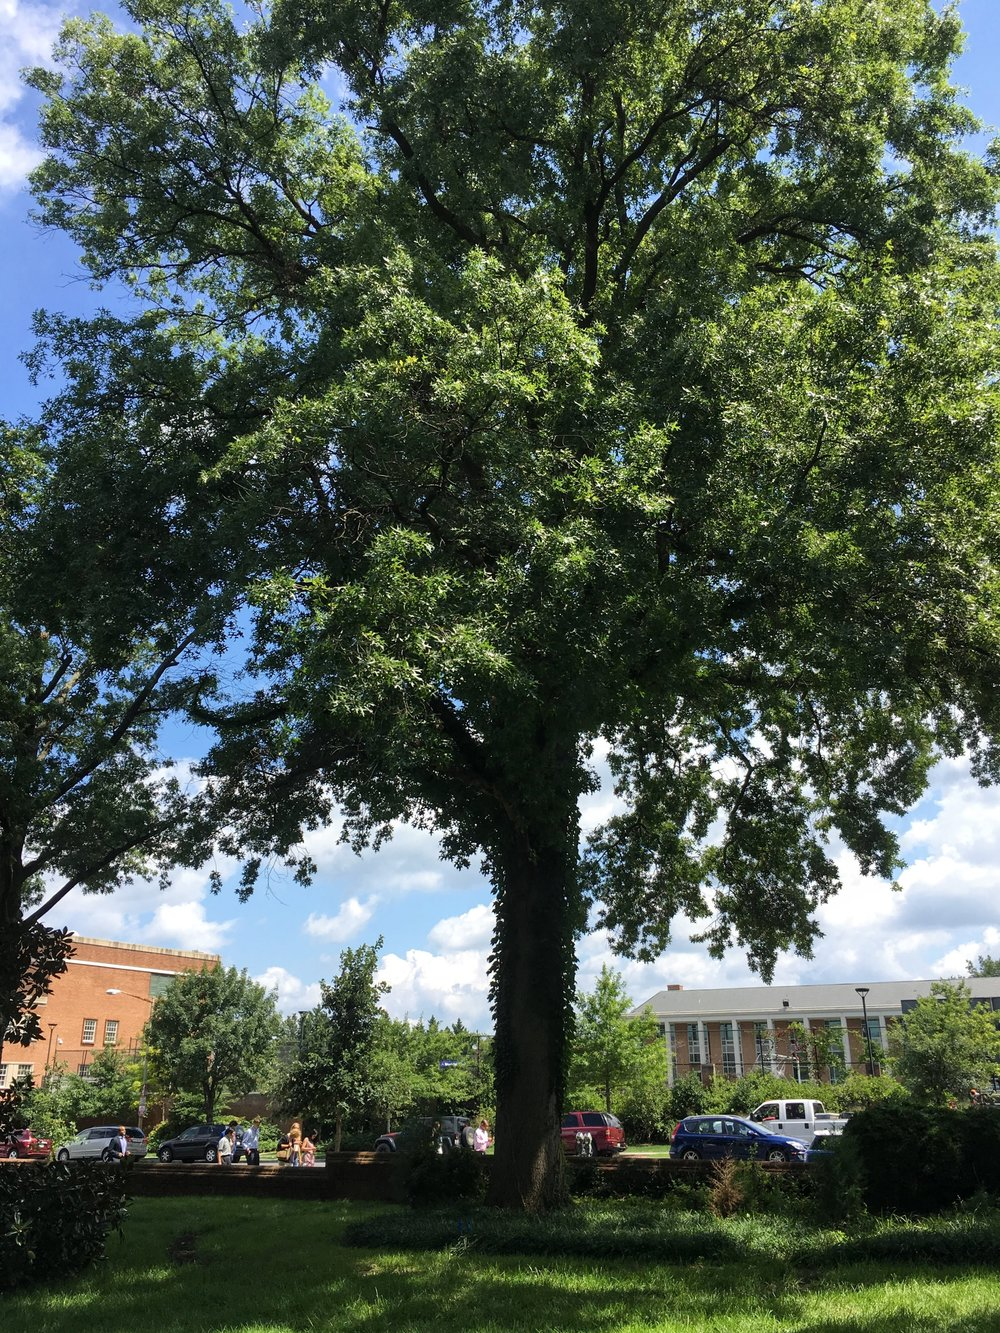 This pin oak is a Heritage Tree protected by the District's Tree Canopy Protection regulations.